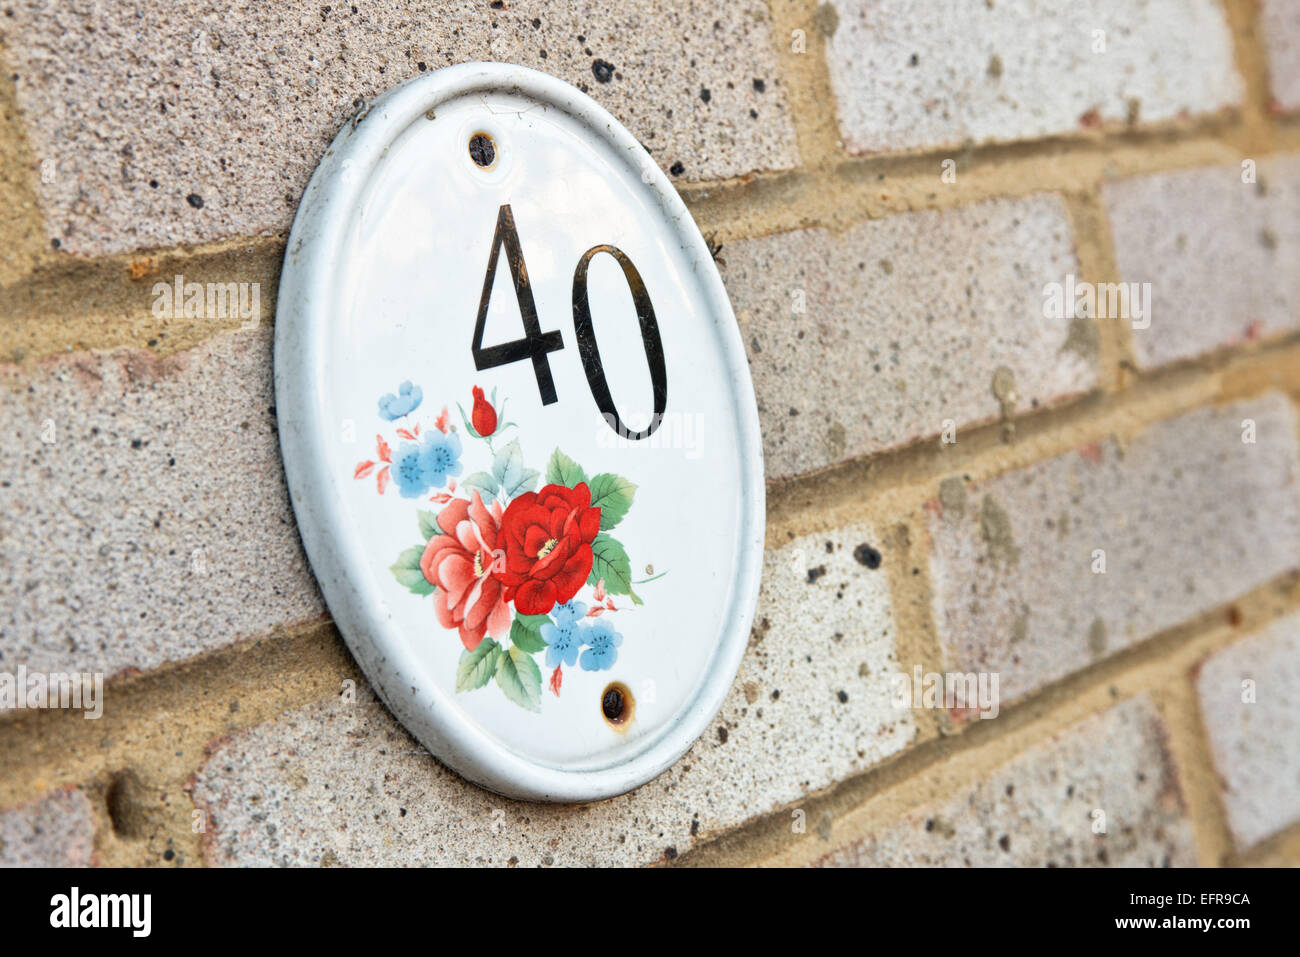 Best Home Number Plate Design Ideas - Design Ideas for Home ...